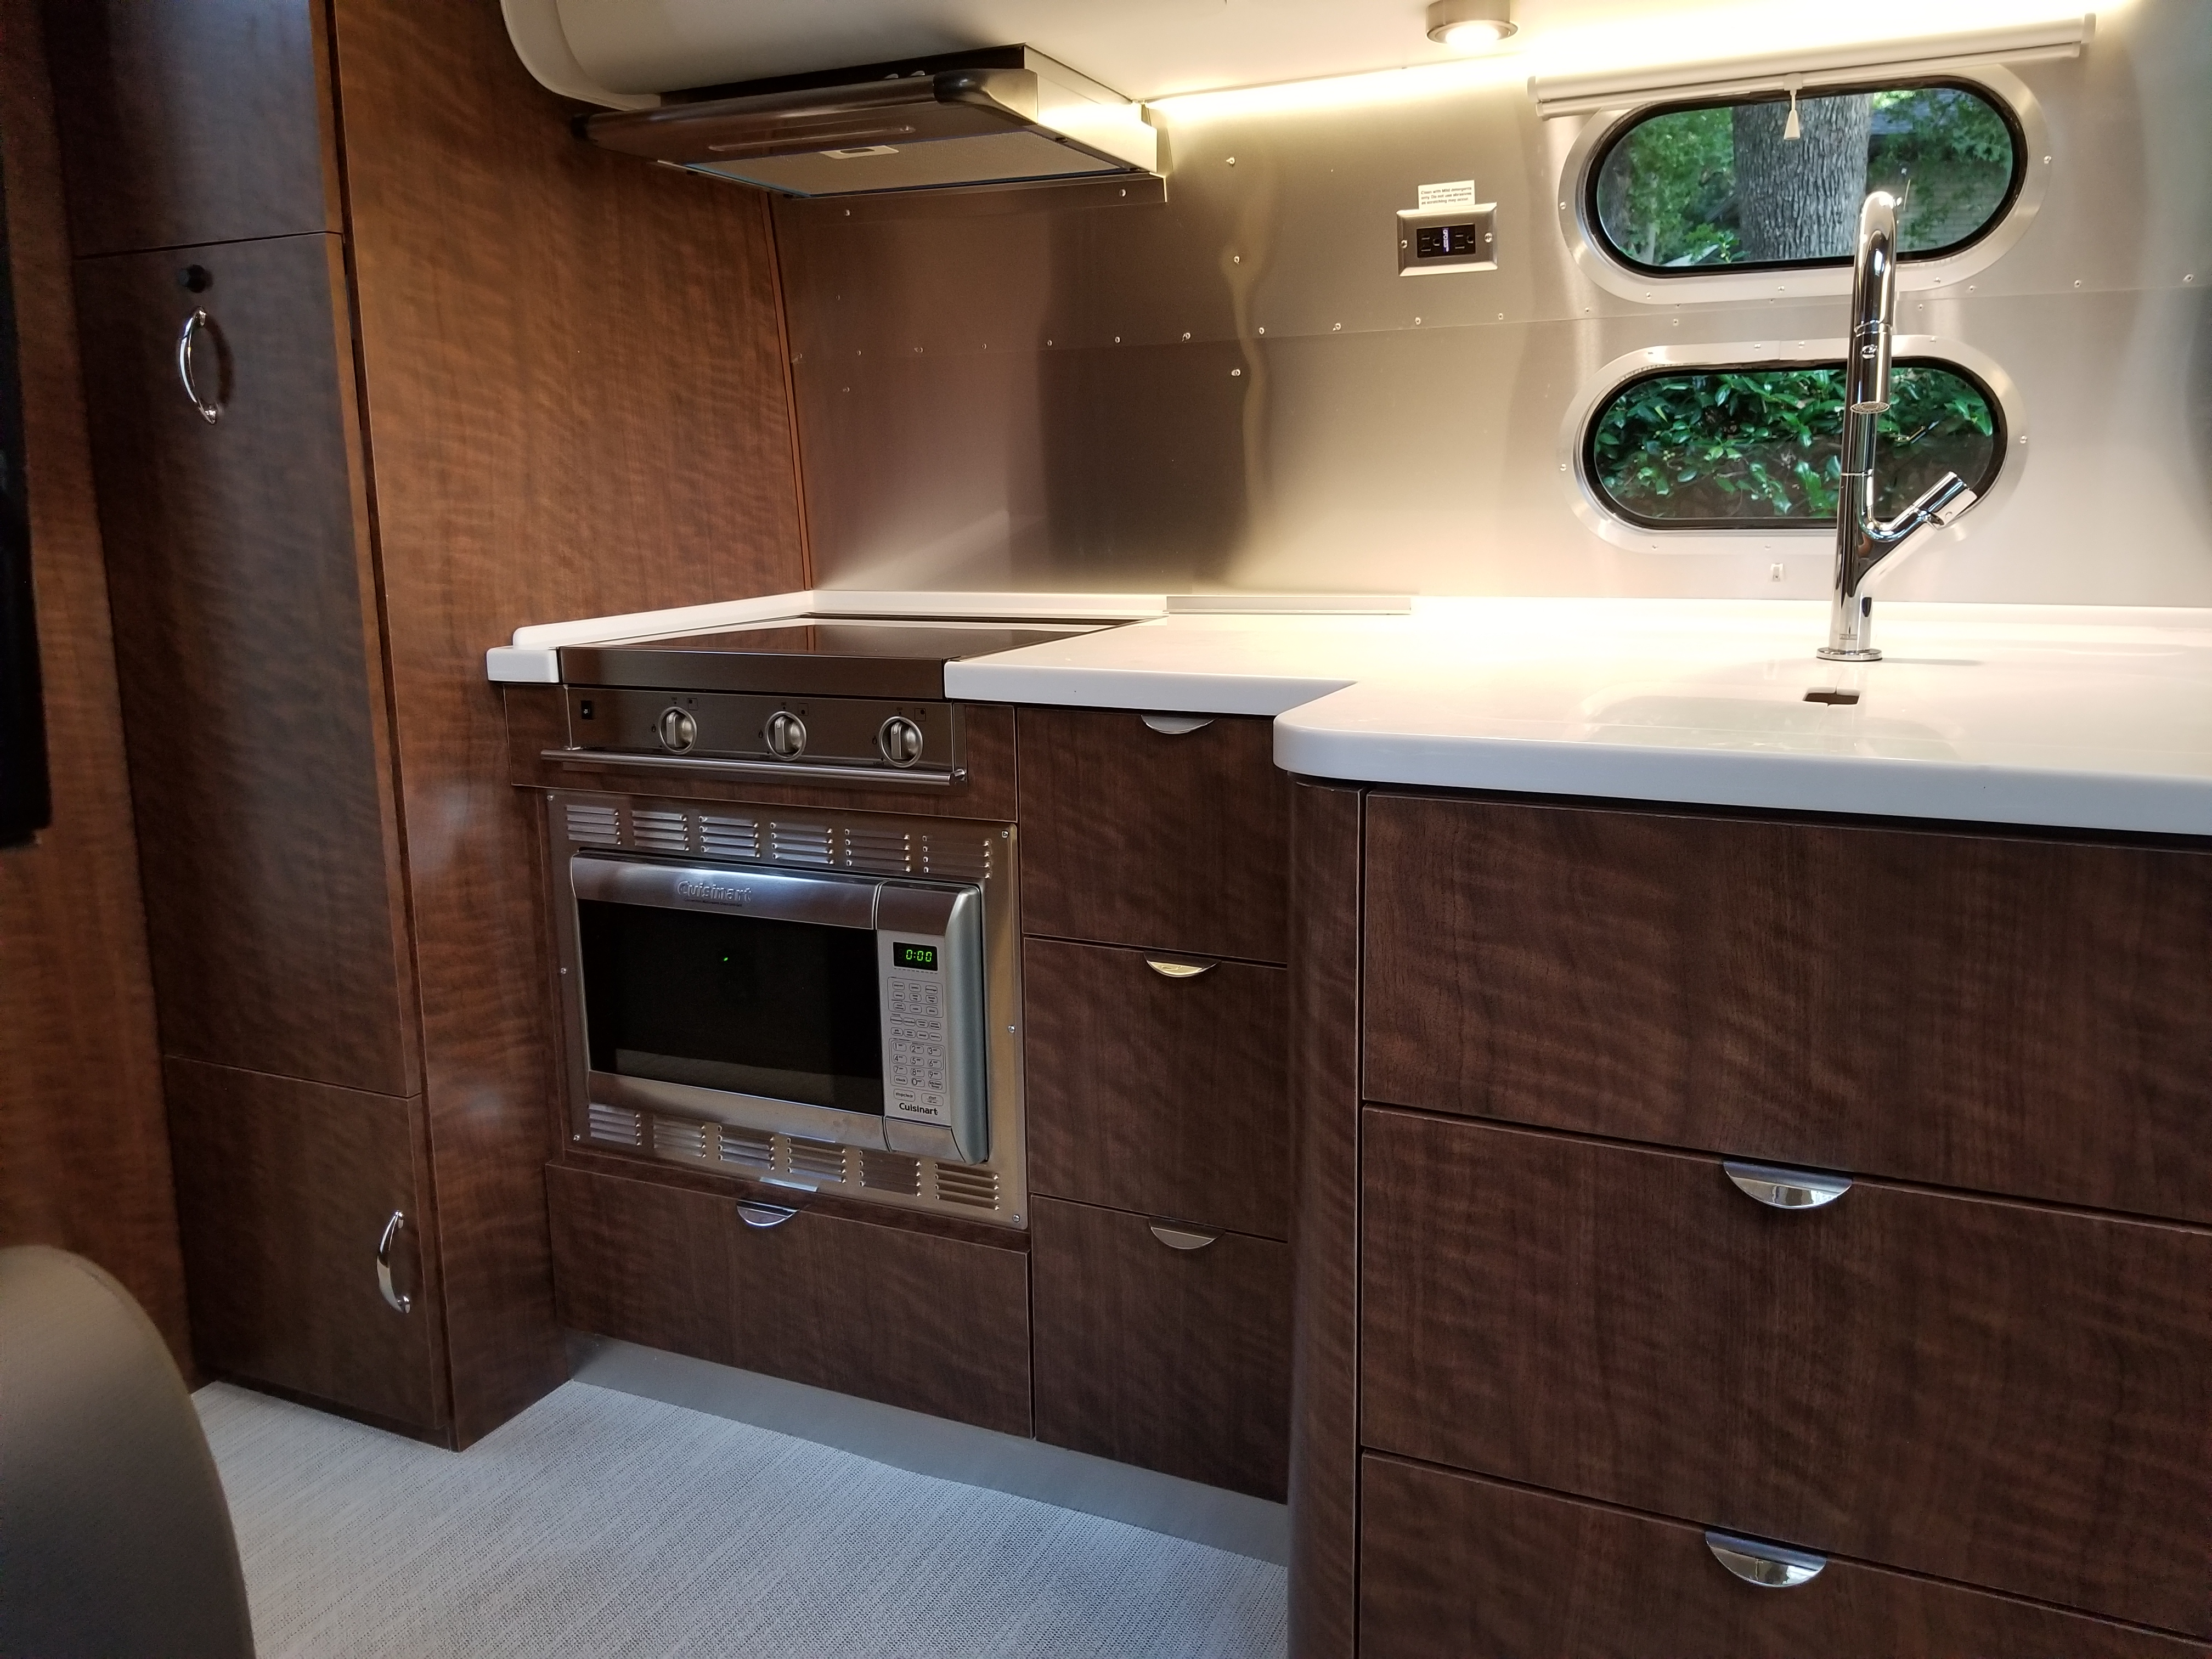 Appealing fully kitchen equipped. Airstream Globetrotter 2018